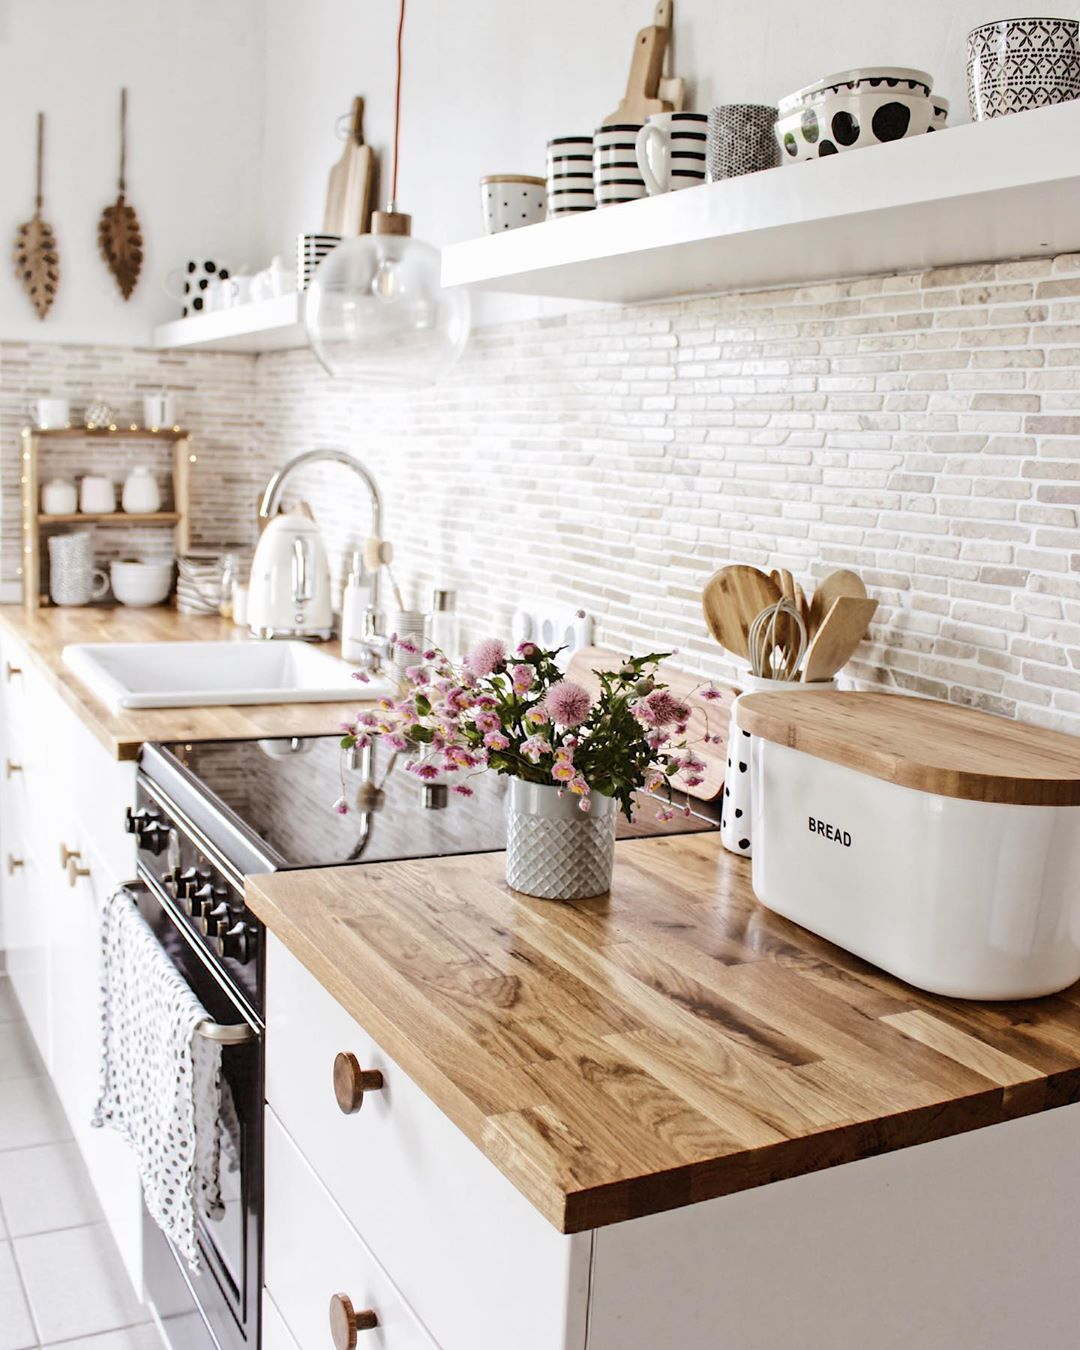 "Photo of ραυ ♡ on Instagram: ""(Unsolicited advertising) Good morning. I wish you a wonderful Sunday / Mother's Day. ❤️😘. , , #kitcheninspo # kitchengoals… """